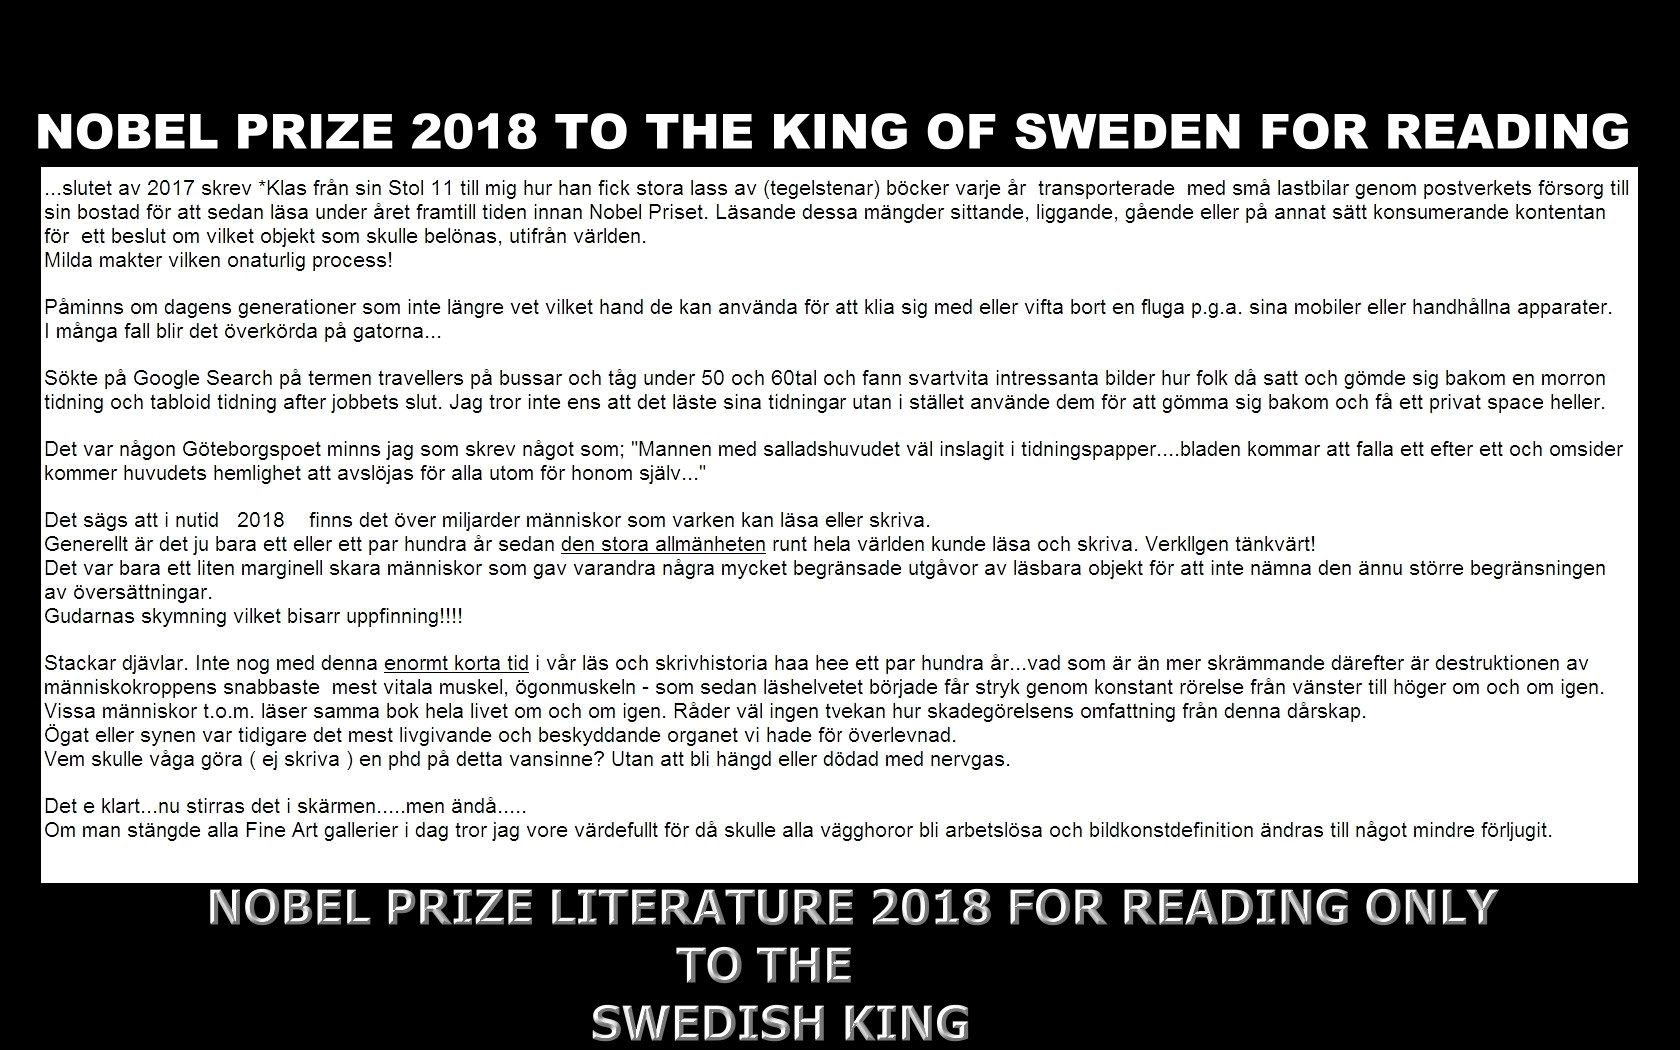 NOBEL PRIZE 2018 TO THE KING